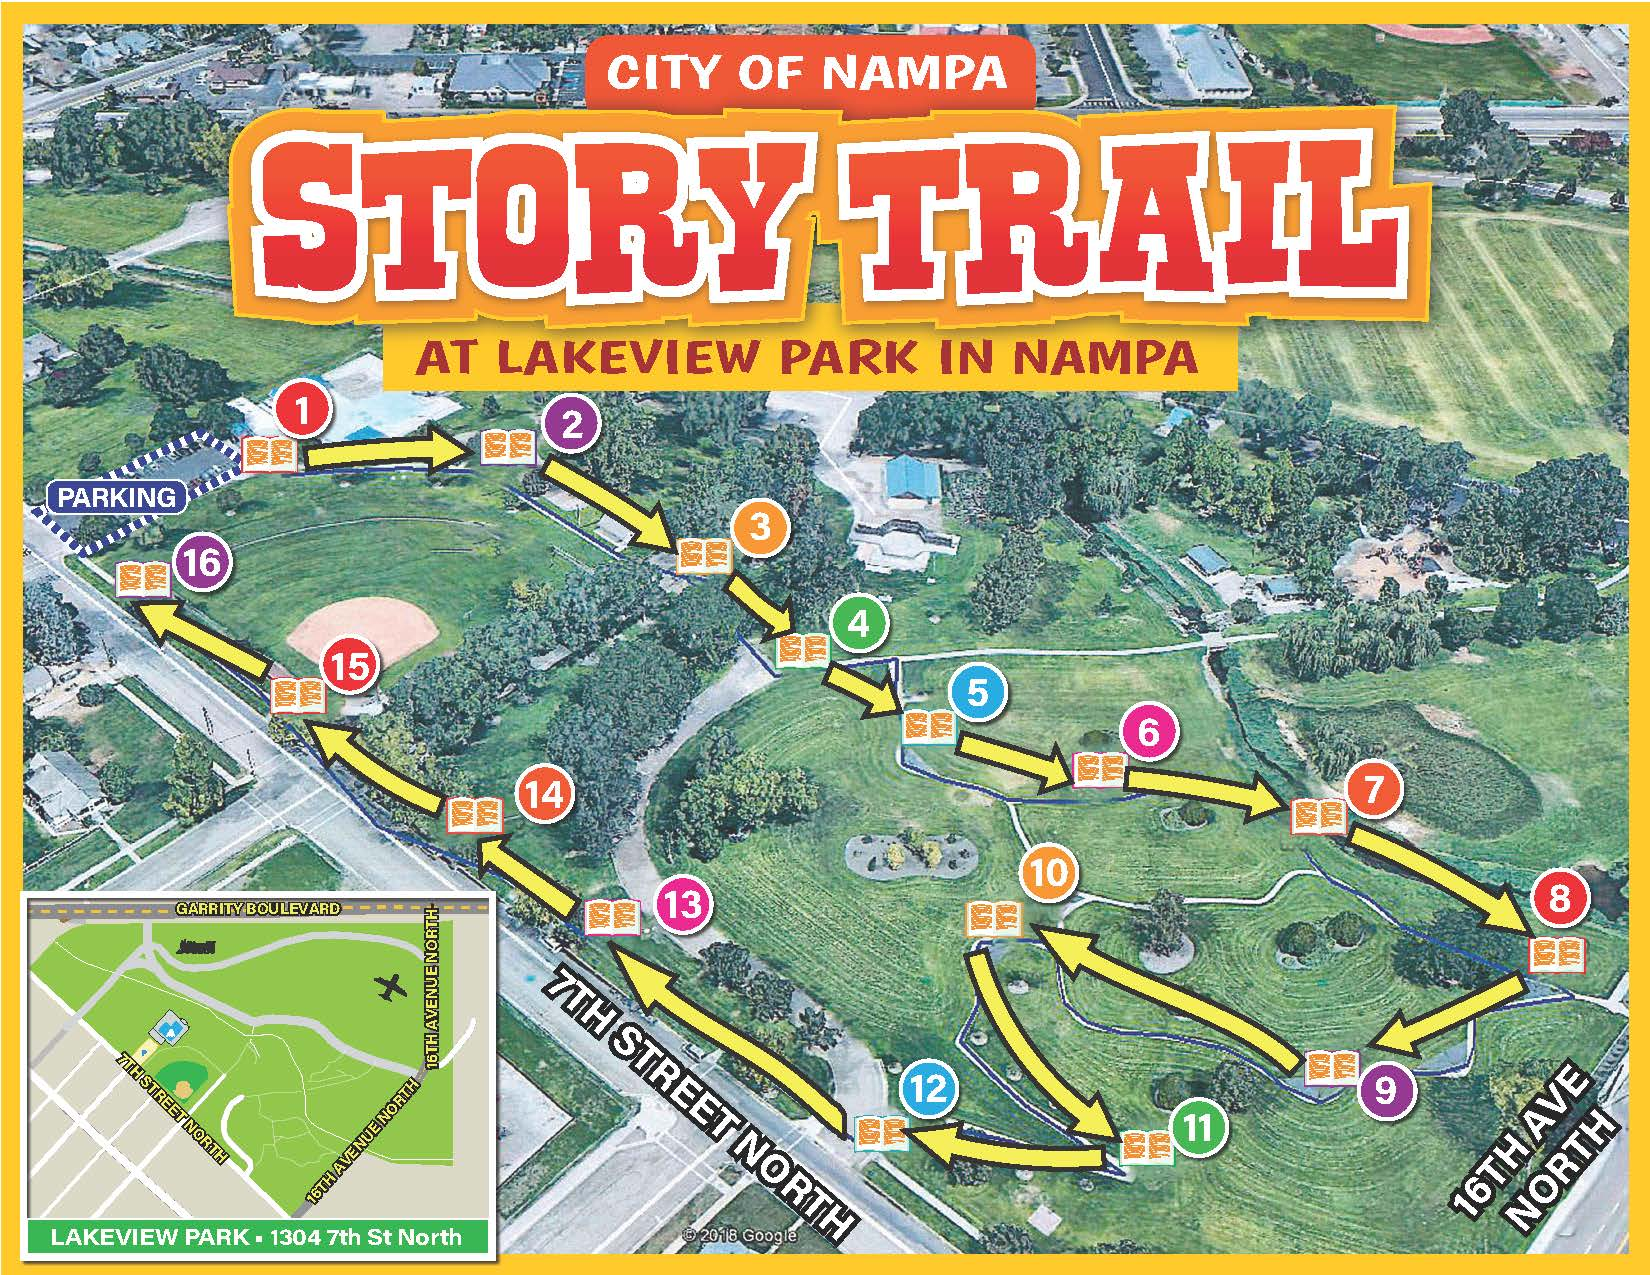 Story Trail MAP